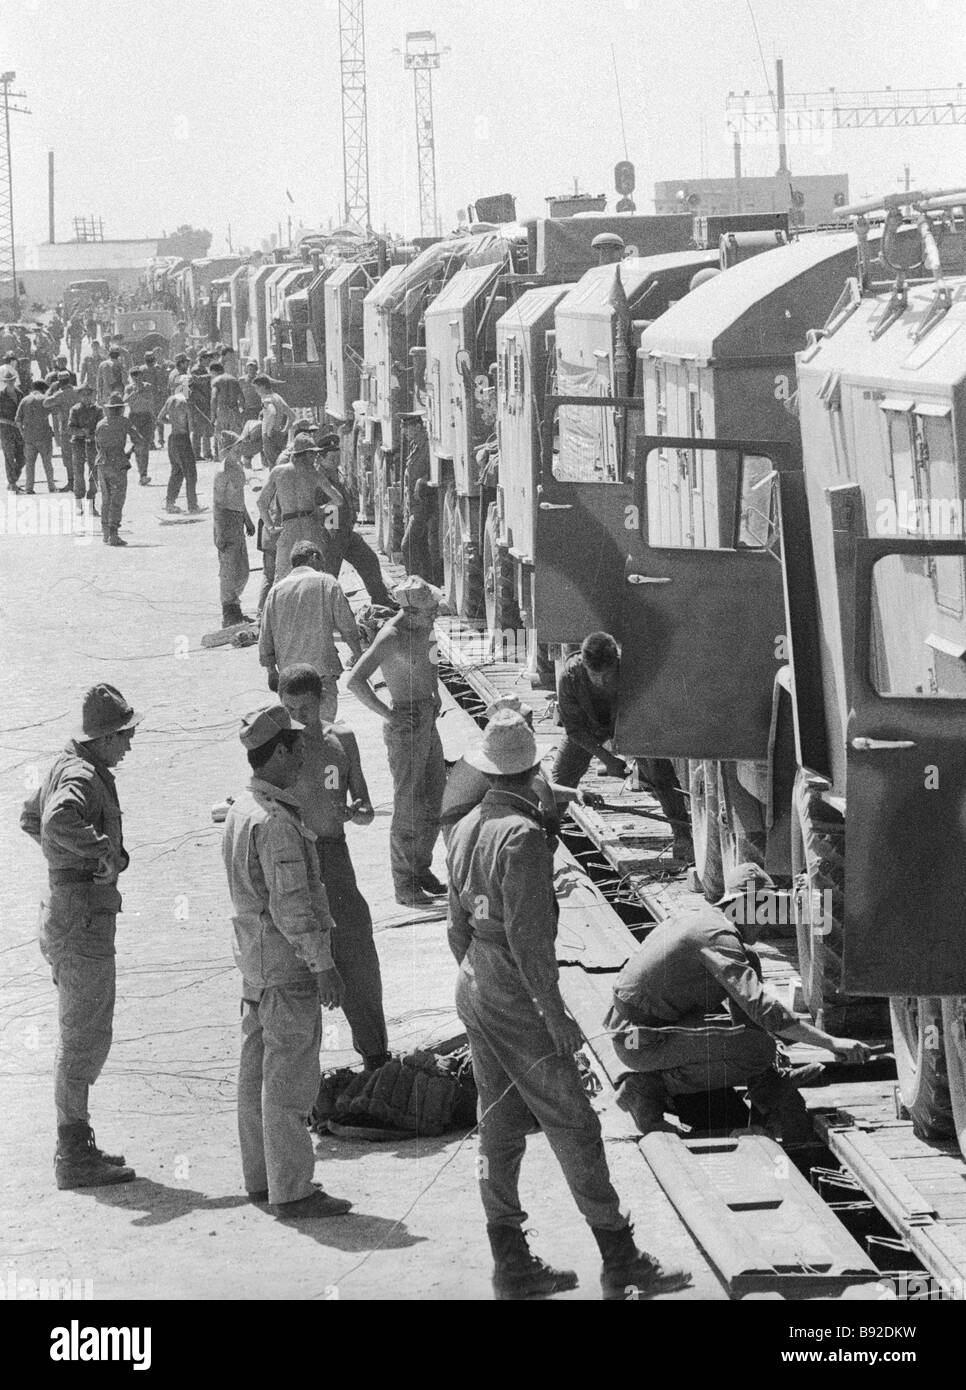 Soviet Afghanistan war - Page 6 Soviet-military-hardware-convoy-returning-home-from-afghanistan-B92DKW